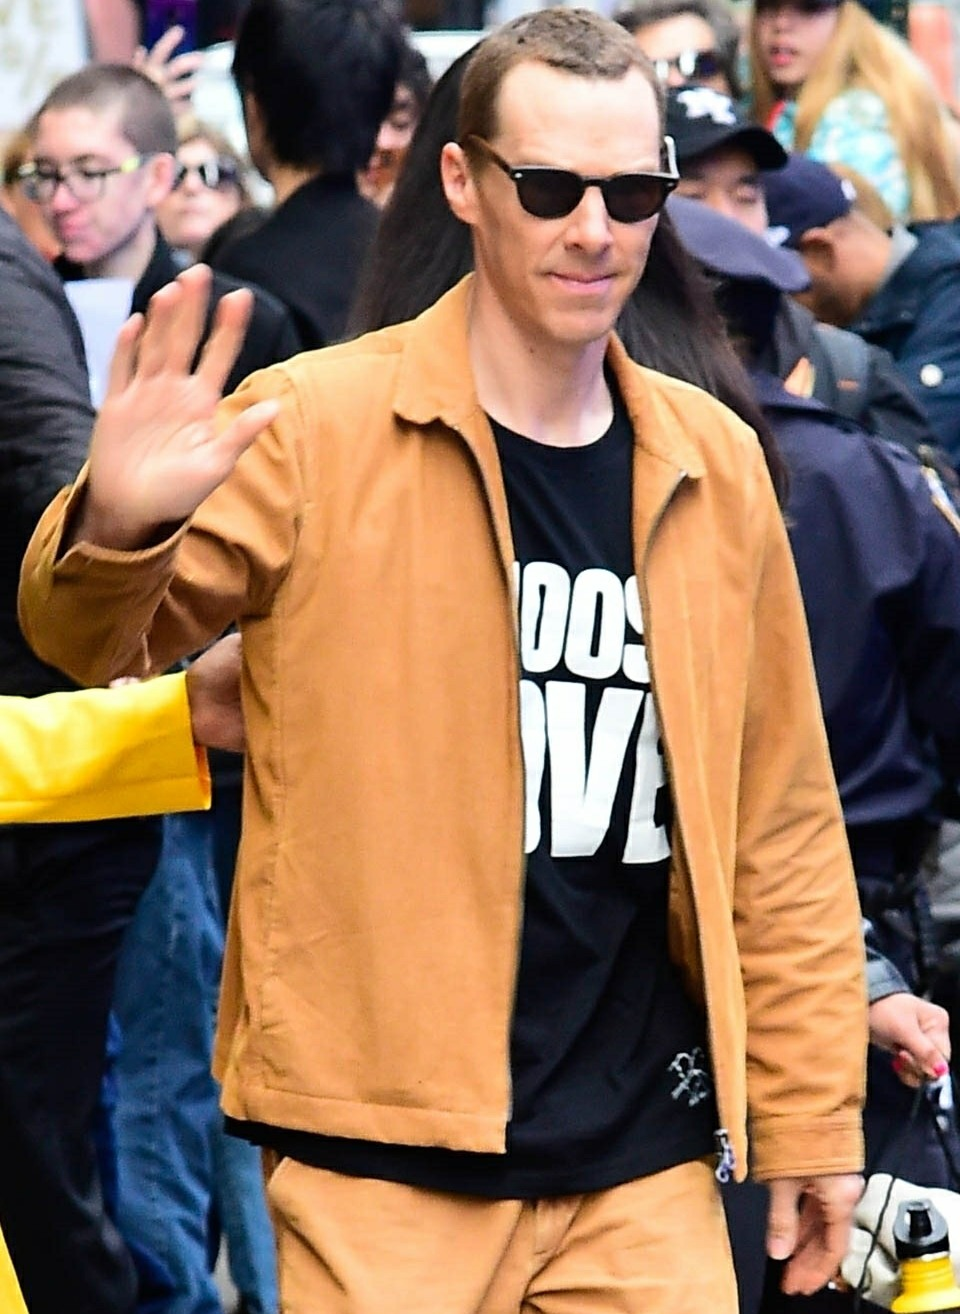 Benedict Cumberbatch smiles and waves while he is out and about in New York